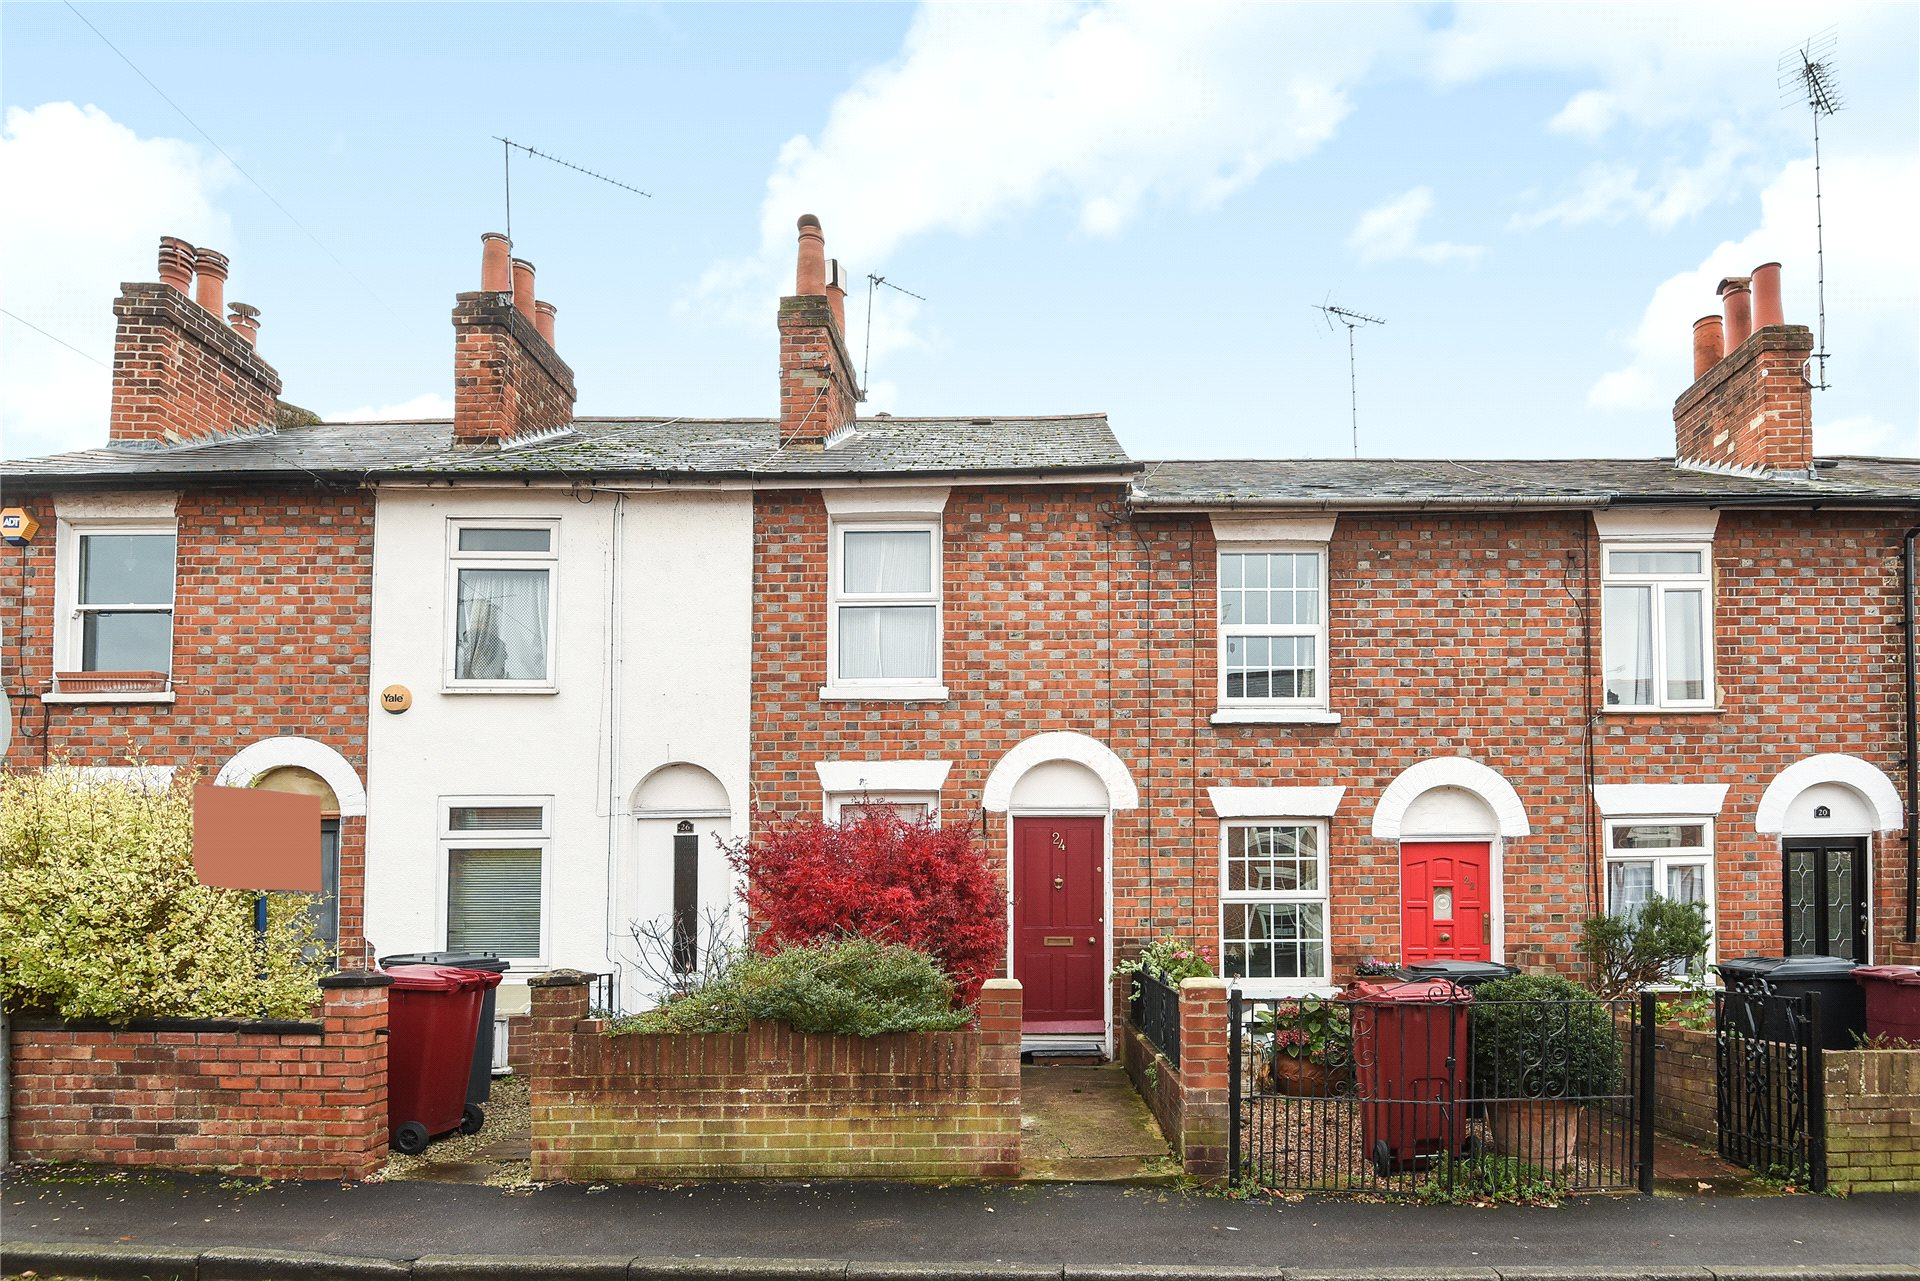 2 Bedrooms Terraced House for sale in St. Johns Road, Reading, Berkshire, RG1